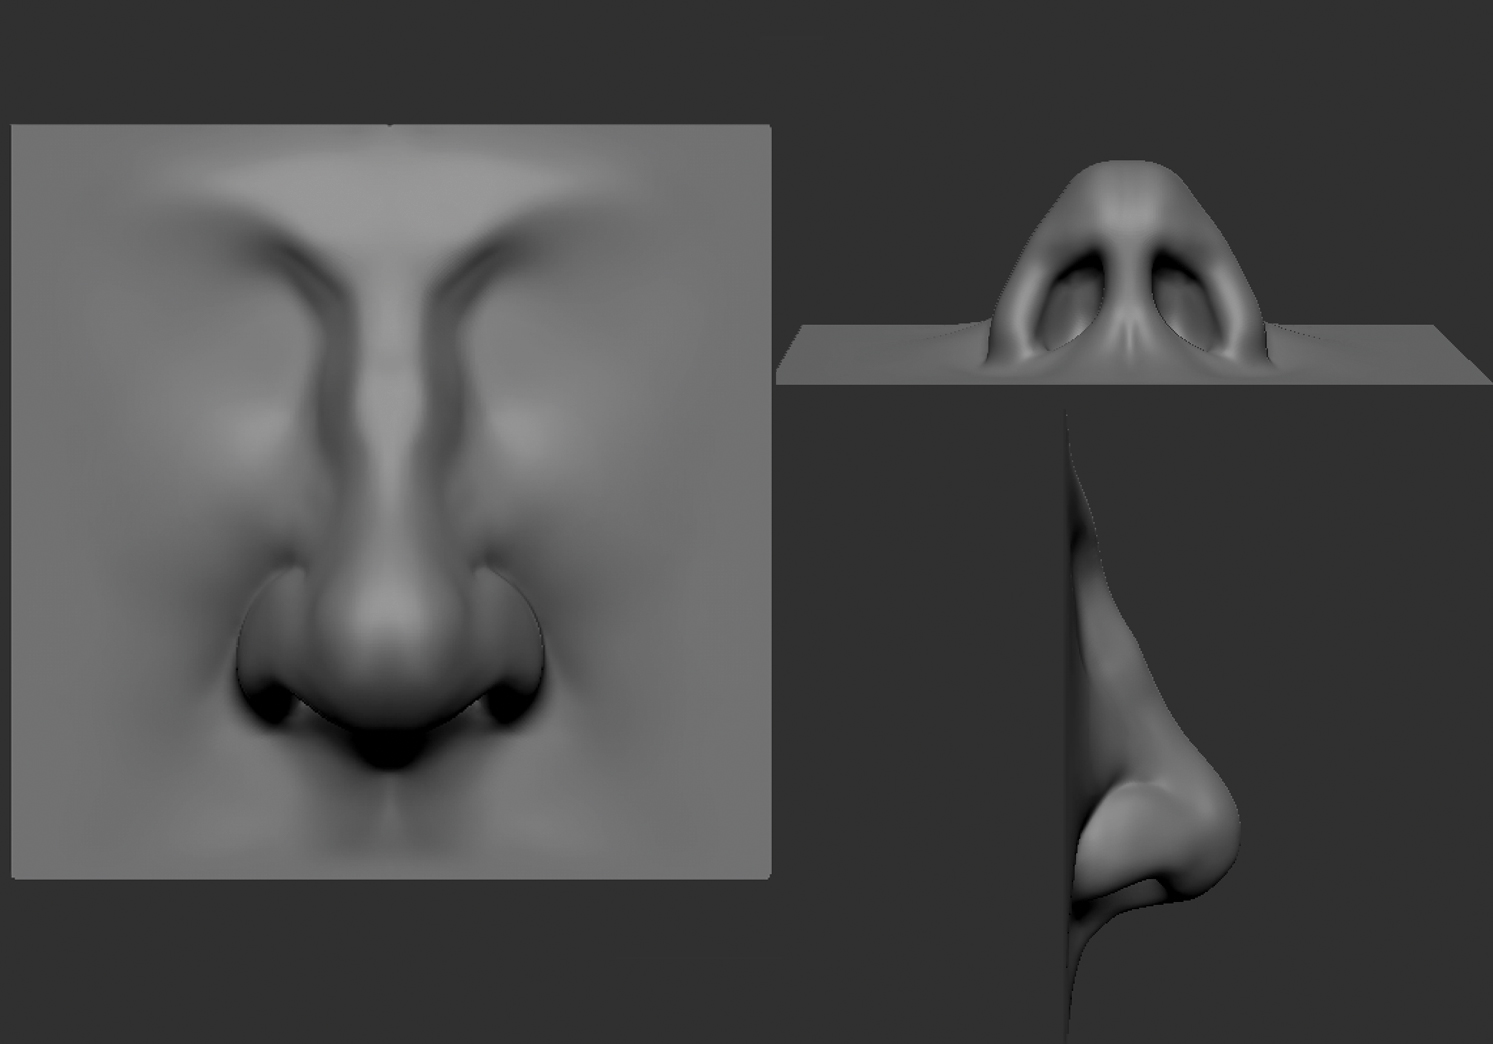 Sculpted nose from three different angles